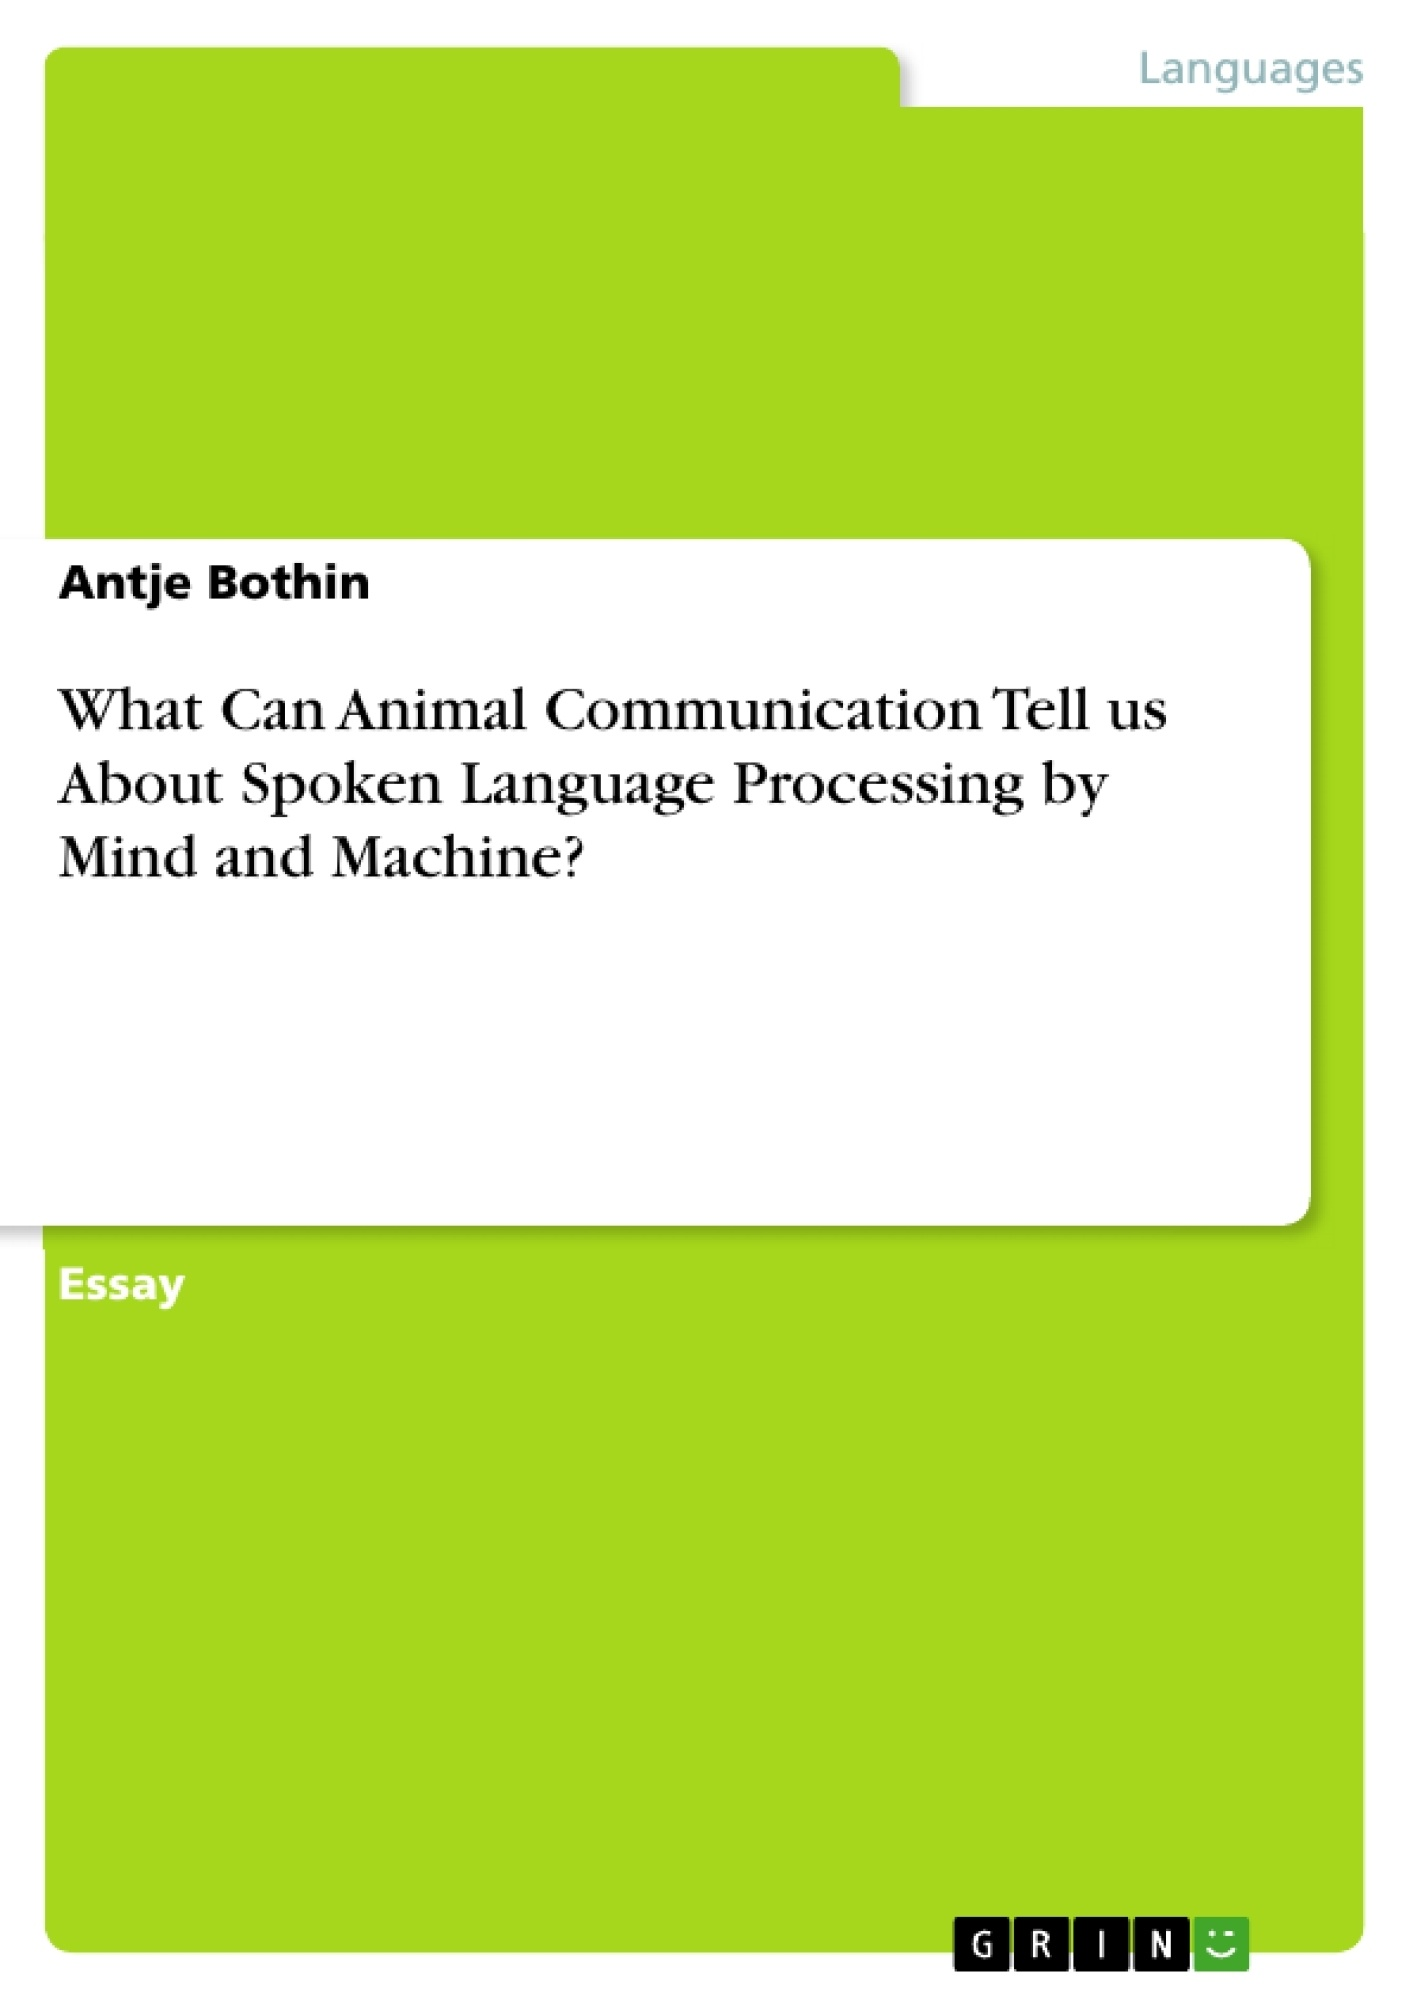 Title: What Can Animal Communication Tell us About  Spoken Language Processing by Mind and Machine?